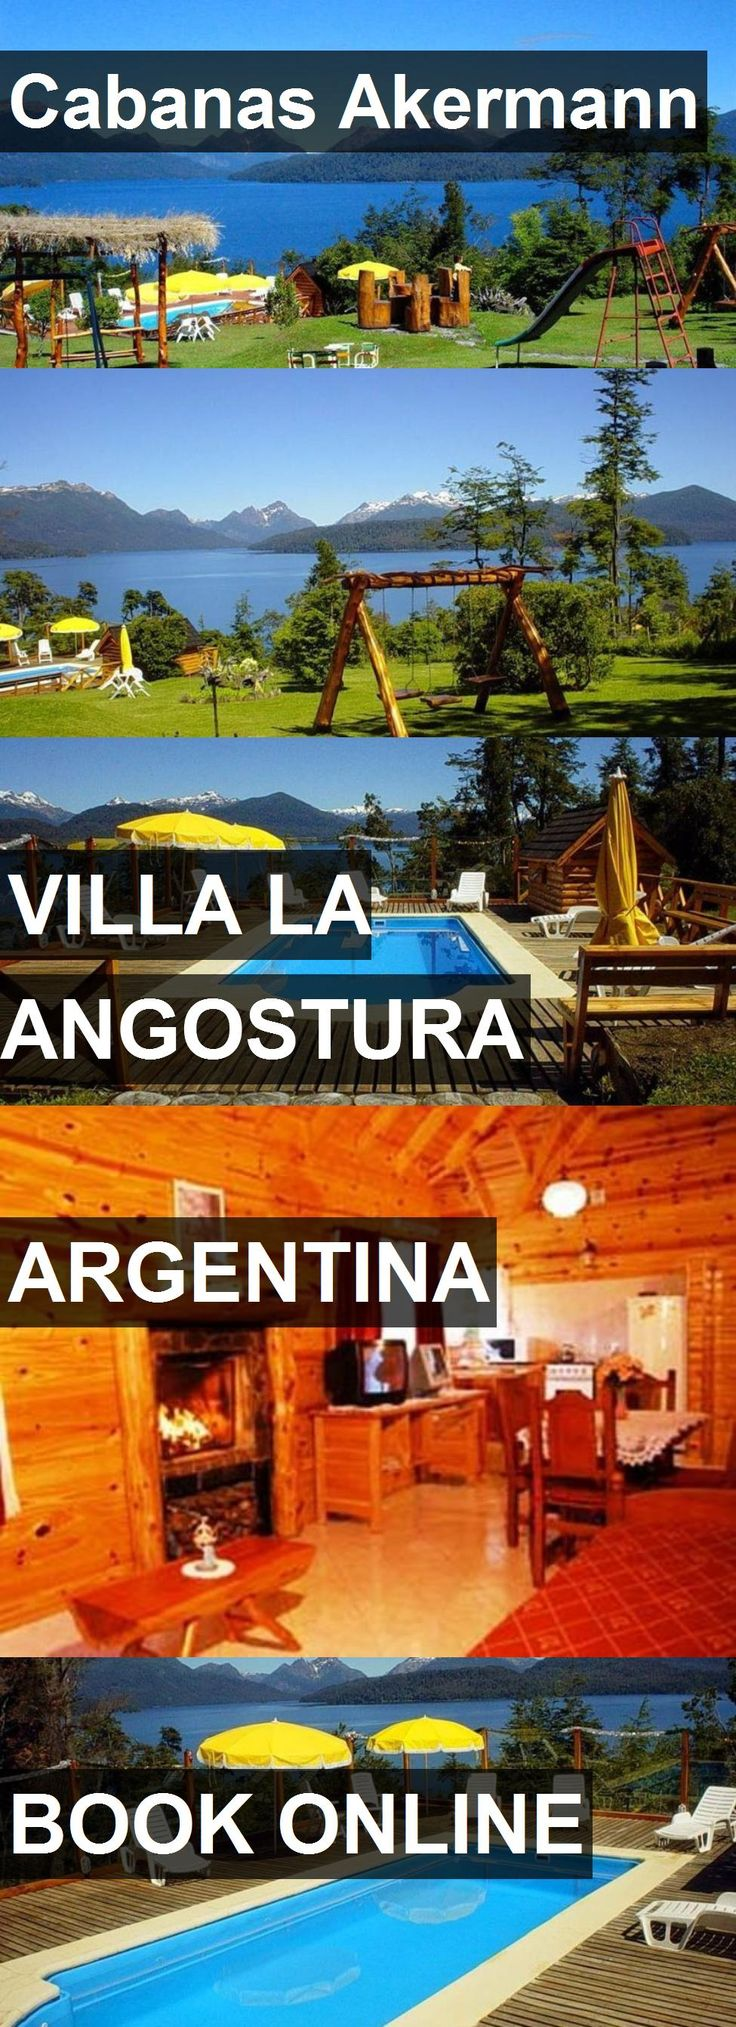 Hotel Cabanas Akermann in Villa la Angostura, Argentina. For more information, photos, reviews and best prices please follow the link. #Argentina #VillalaAngostura #CabanasAkermann #hotel #travel #vacation